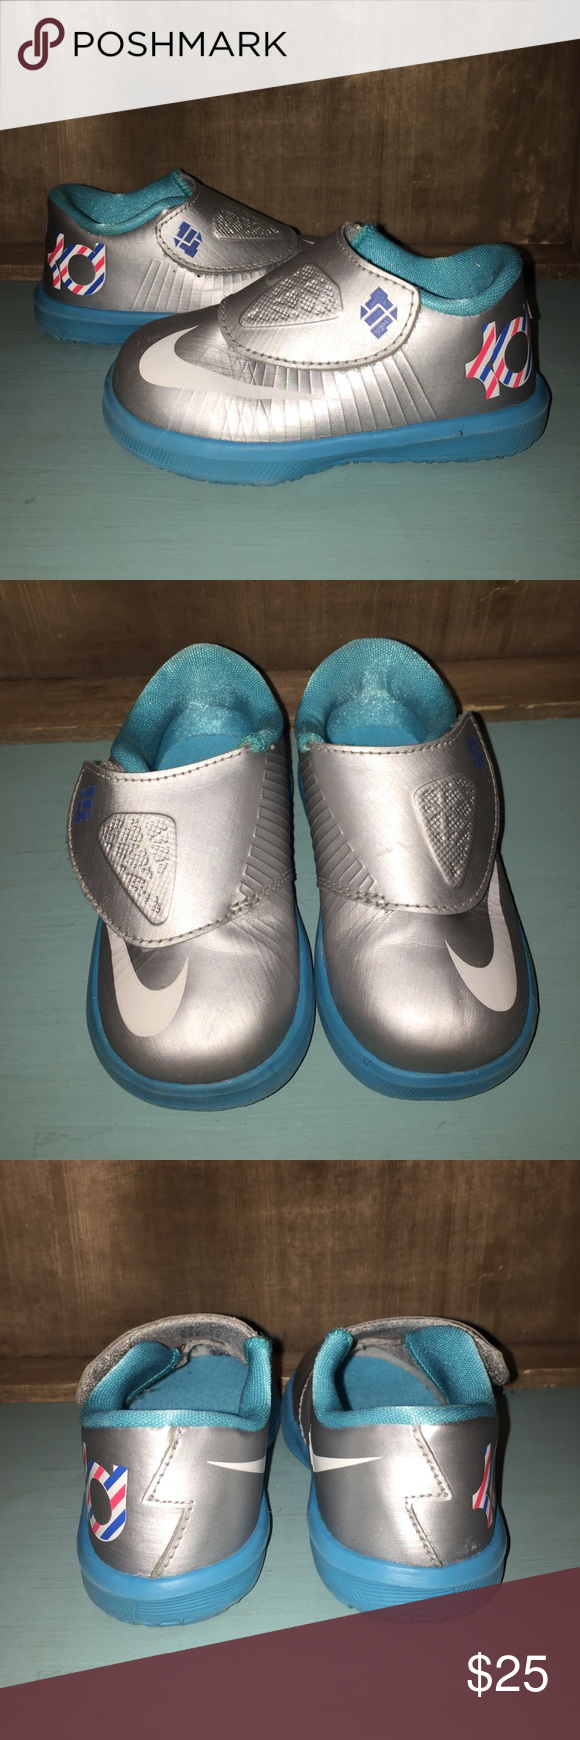 2d1d49b17791 Nike KD (Kevin Durant) Perfect condition! They come from a smoke free